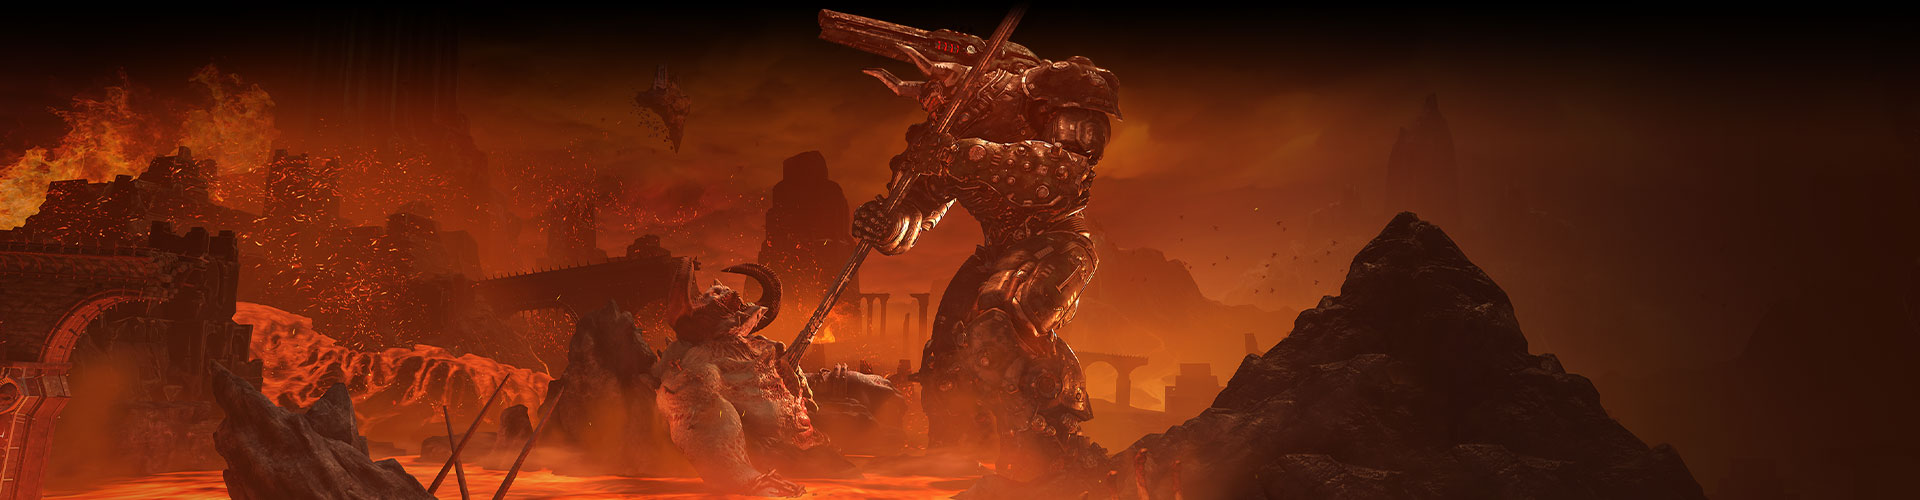 Un submundo de monstruos y ríos de lava roja en DOOM Eternal.